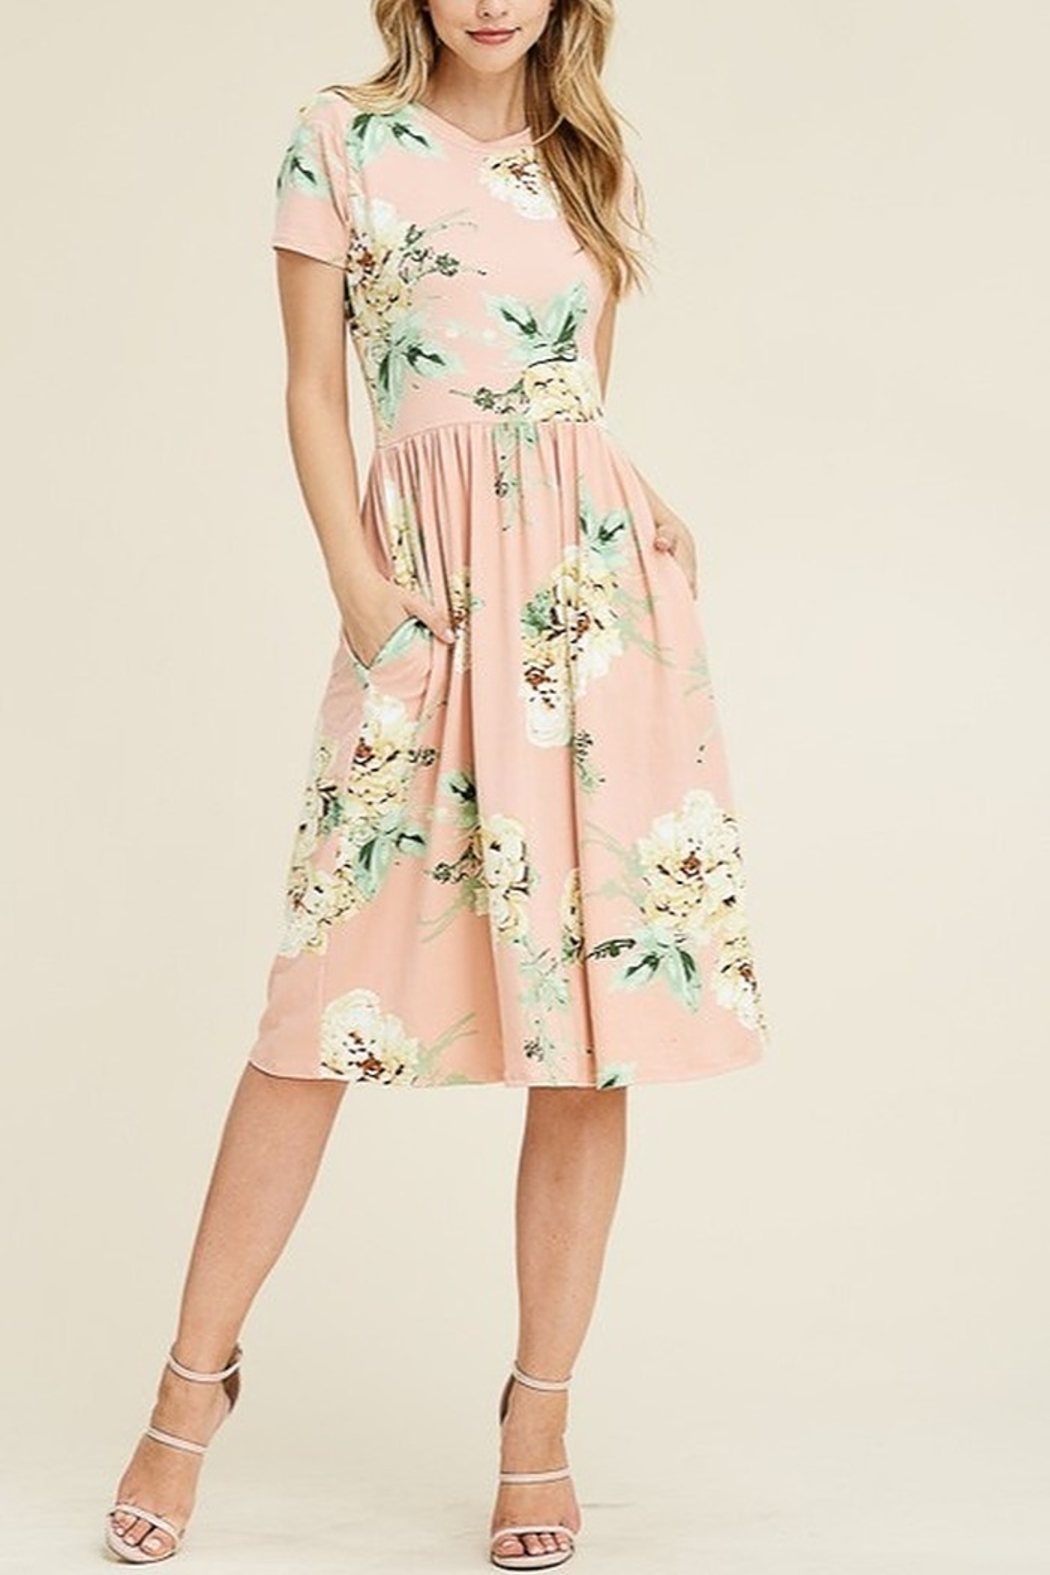 Lyn-Maree's  Floral Everyday Dress - Main Image